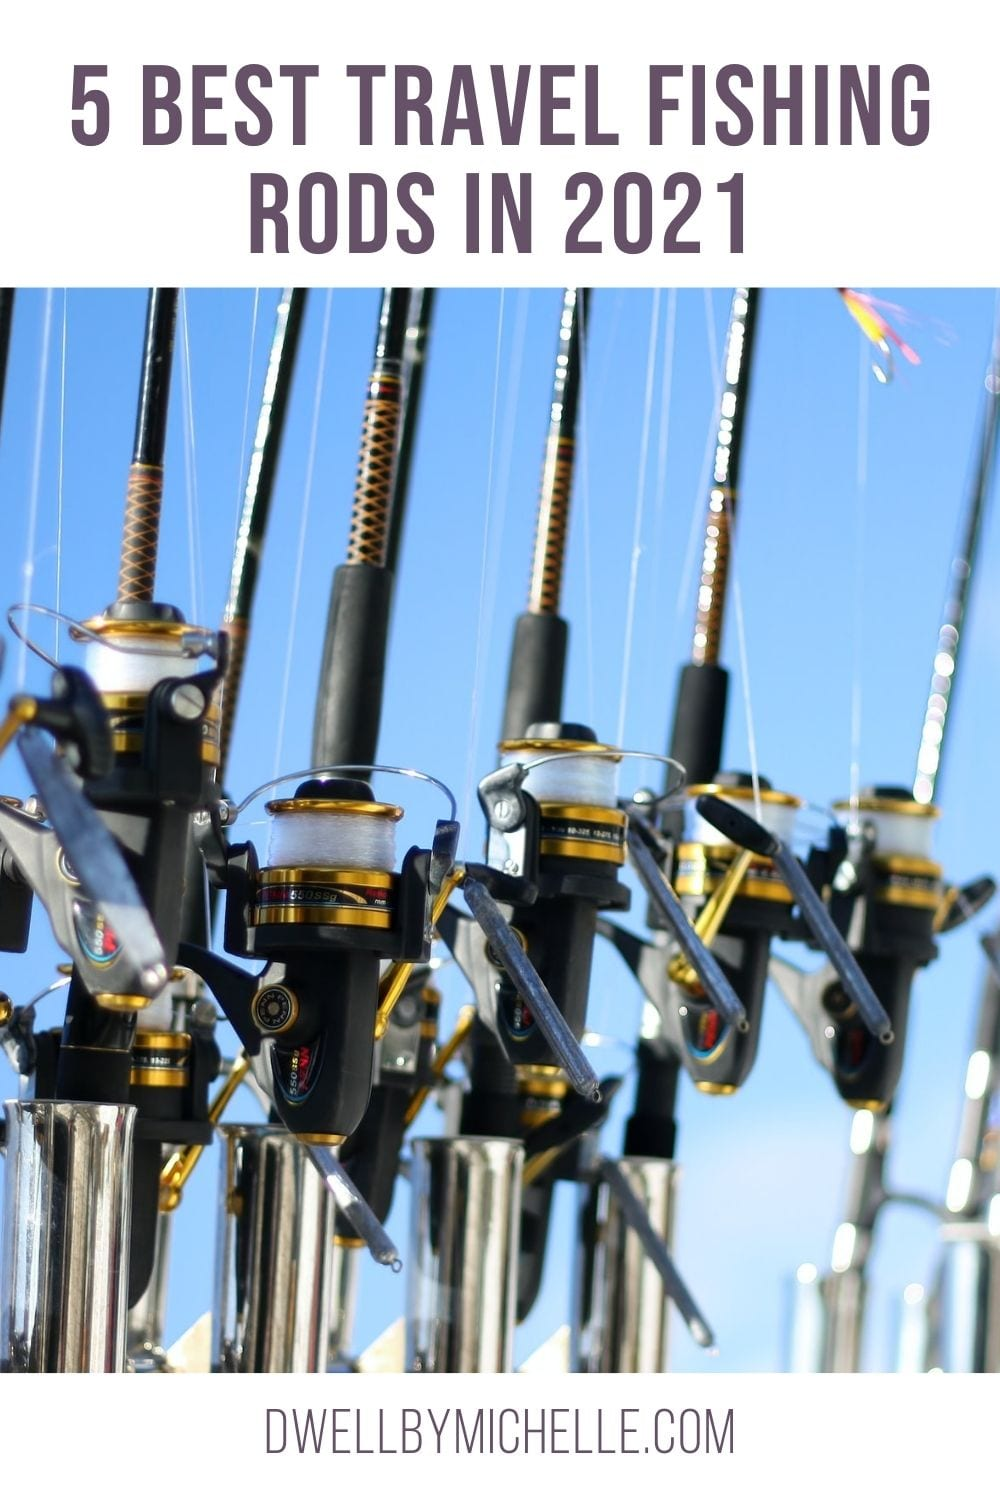 best travel fishing rod, line of rods on a boat fishing trip